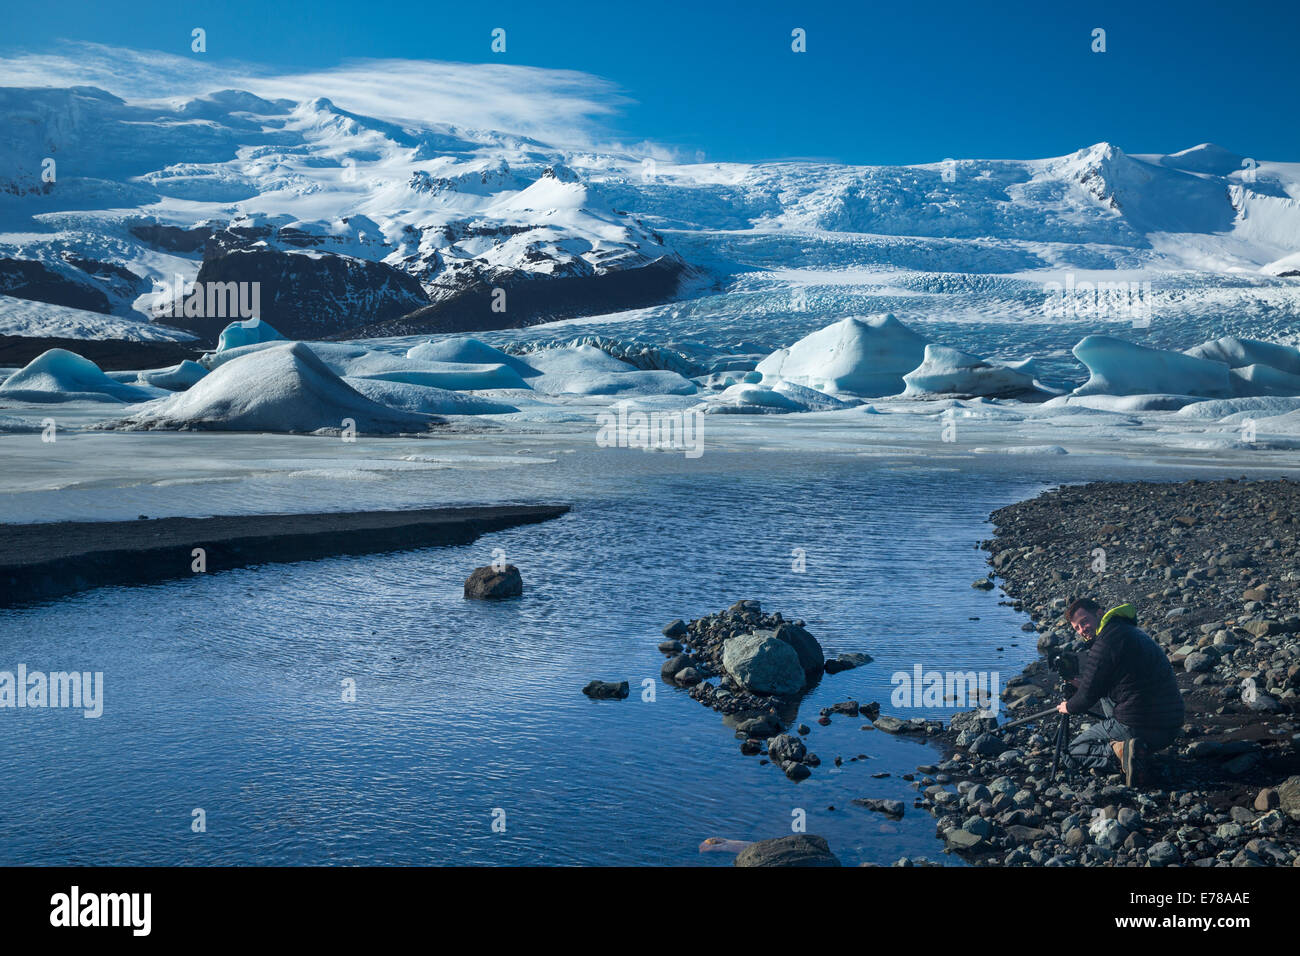 the Vatnajokull Glalcier decending to sea level at Fjallsarlon, eastern Iceland - Stock Image